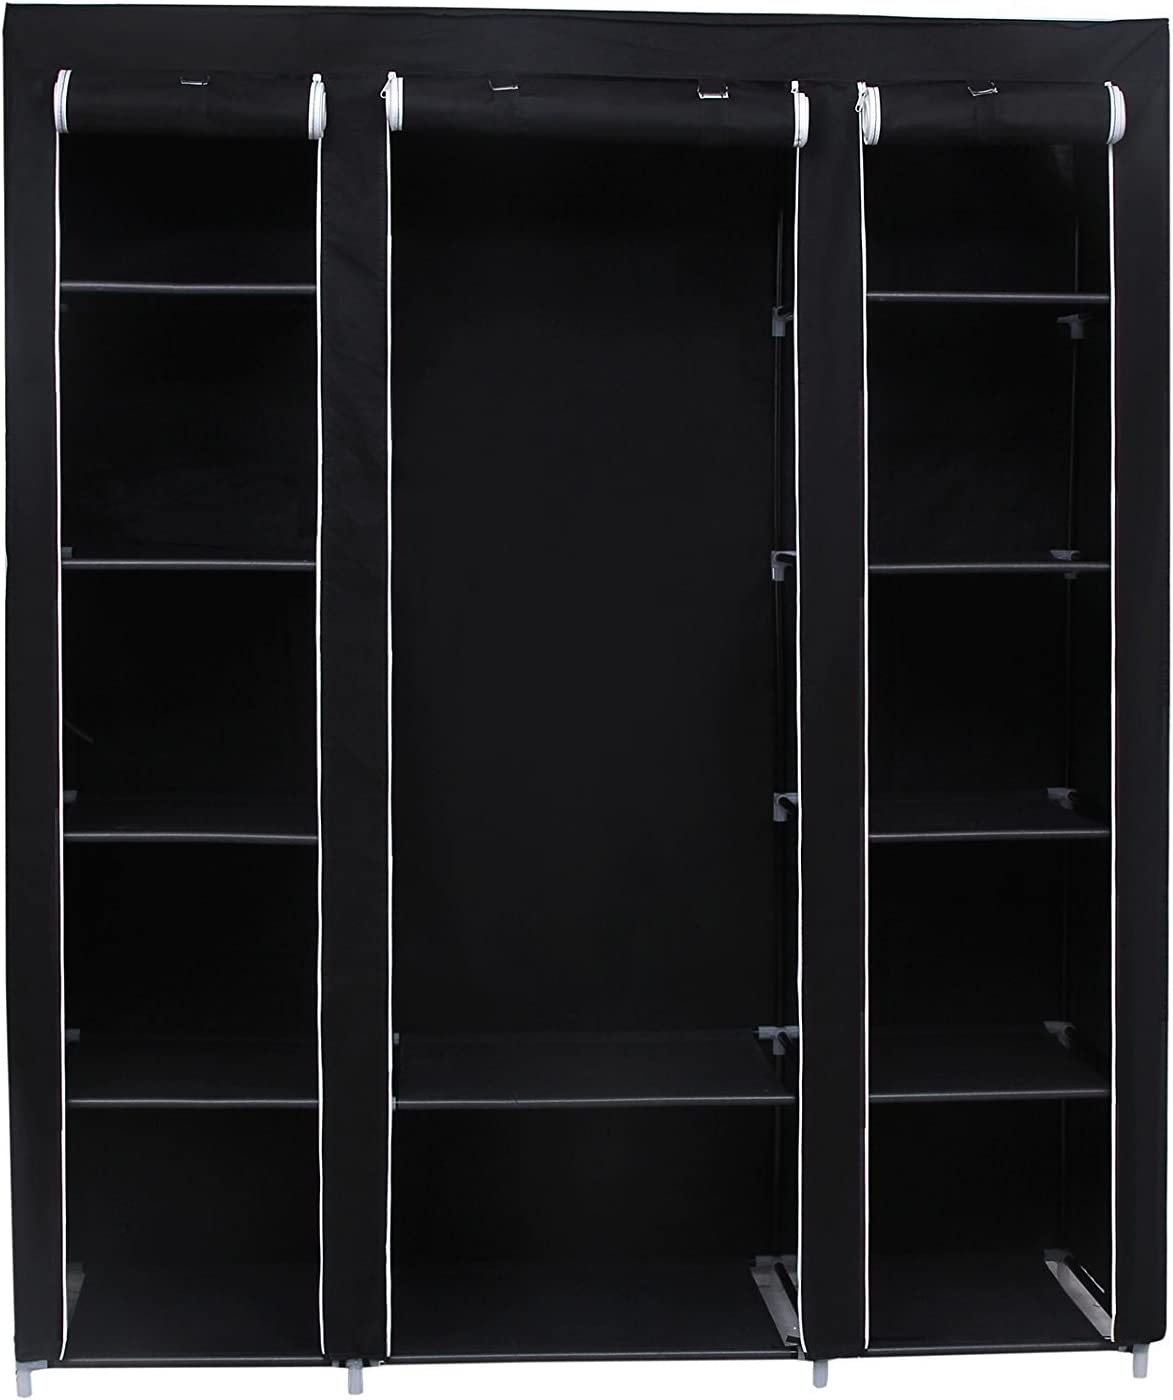 SONGMICS 59 Inch Portable Clothes Closet Wardrobe Storage Organizer with Non-Woven Fabric, Quick and Easy to Assemble, Extra Strong and Durable, Black ULSF03H (2 Pack (Black))